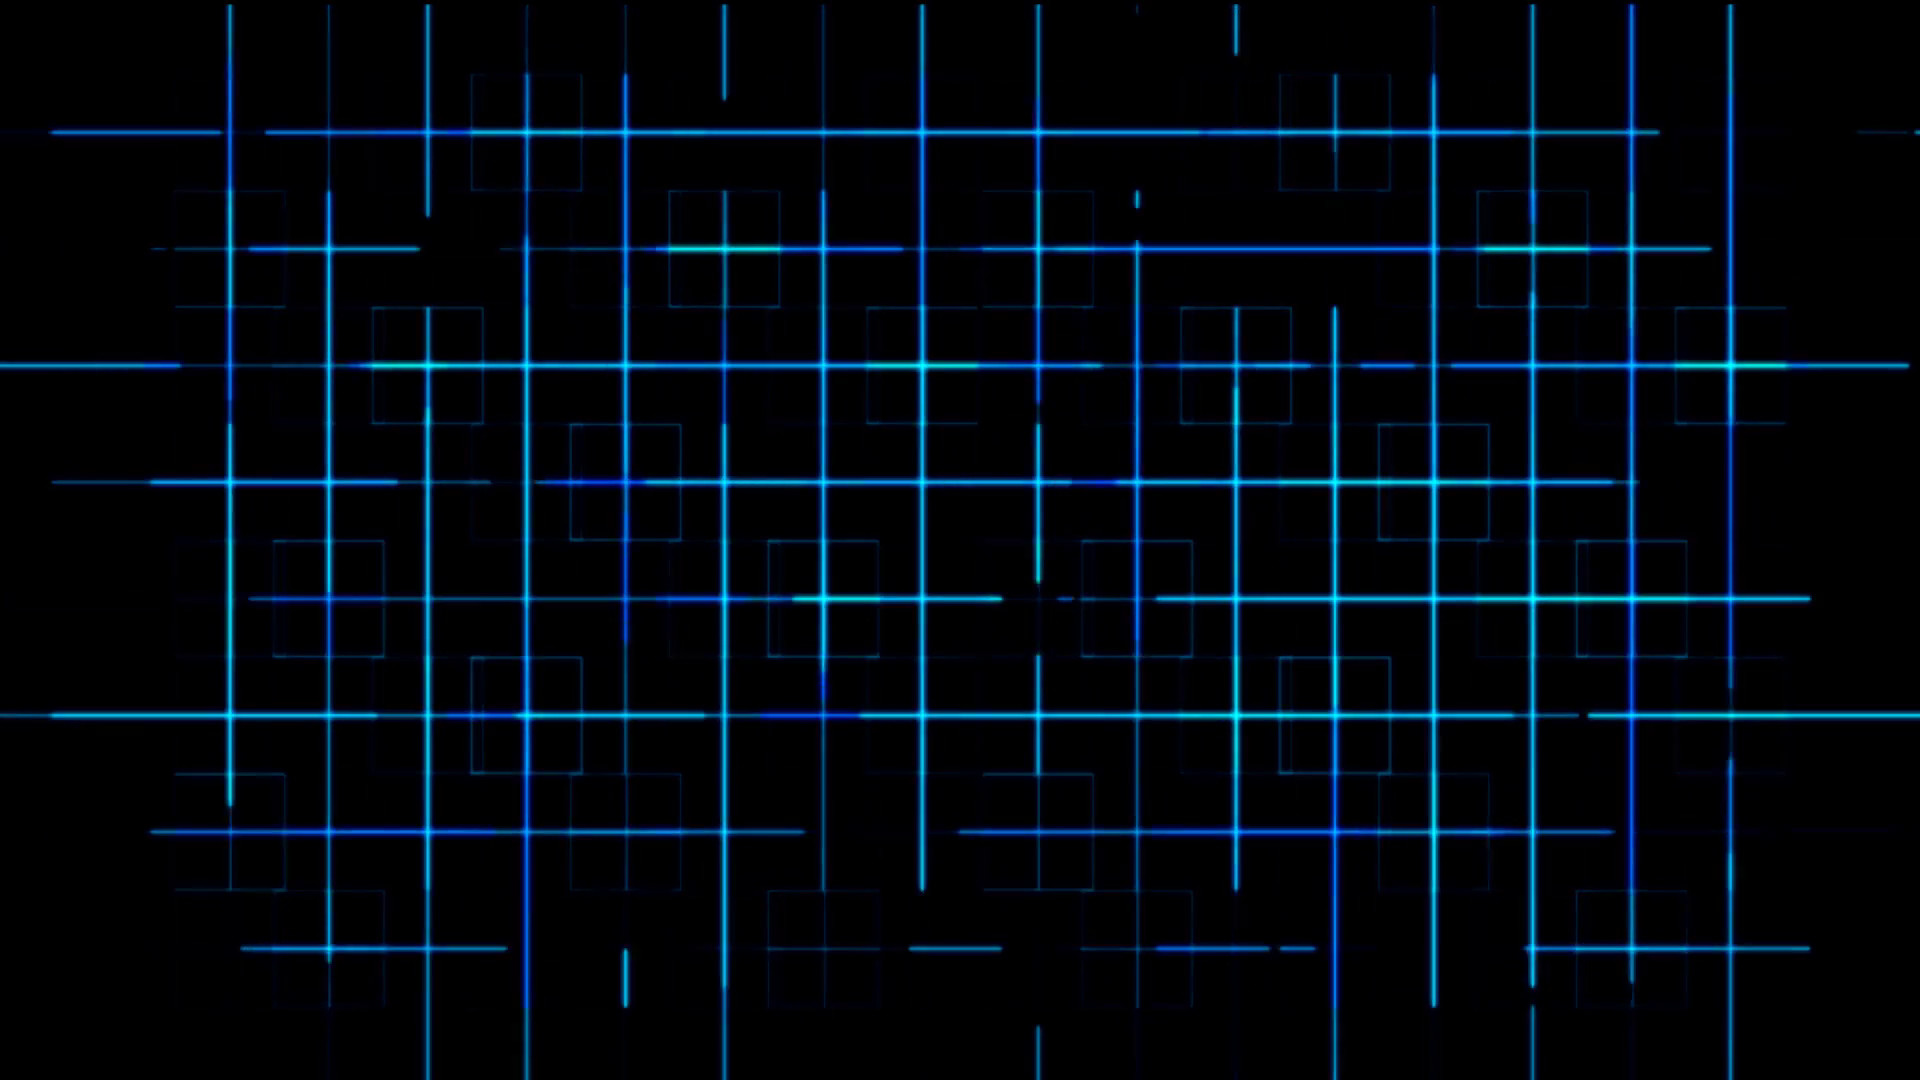 3d Animations Wallpapers Gif Tron Grid Wallpaper 72 Pictures